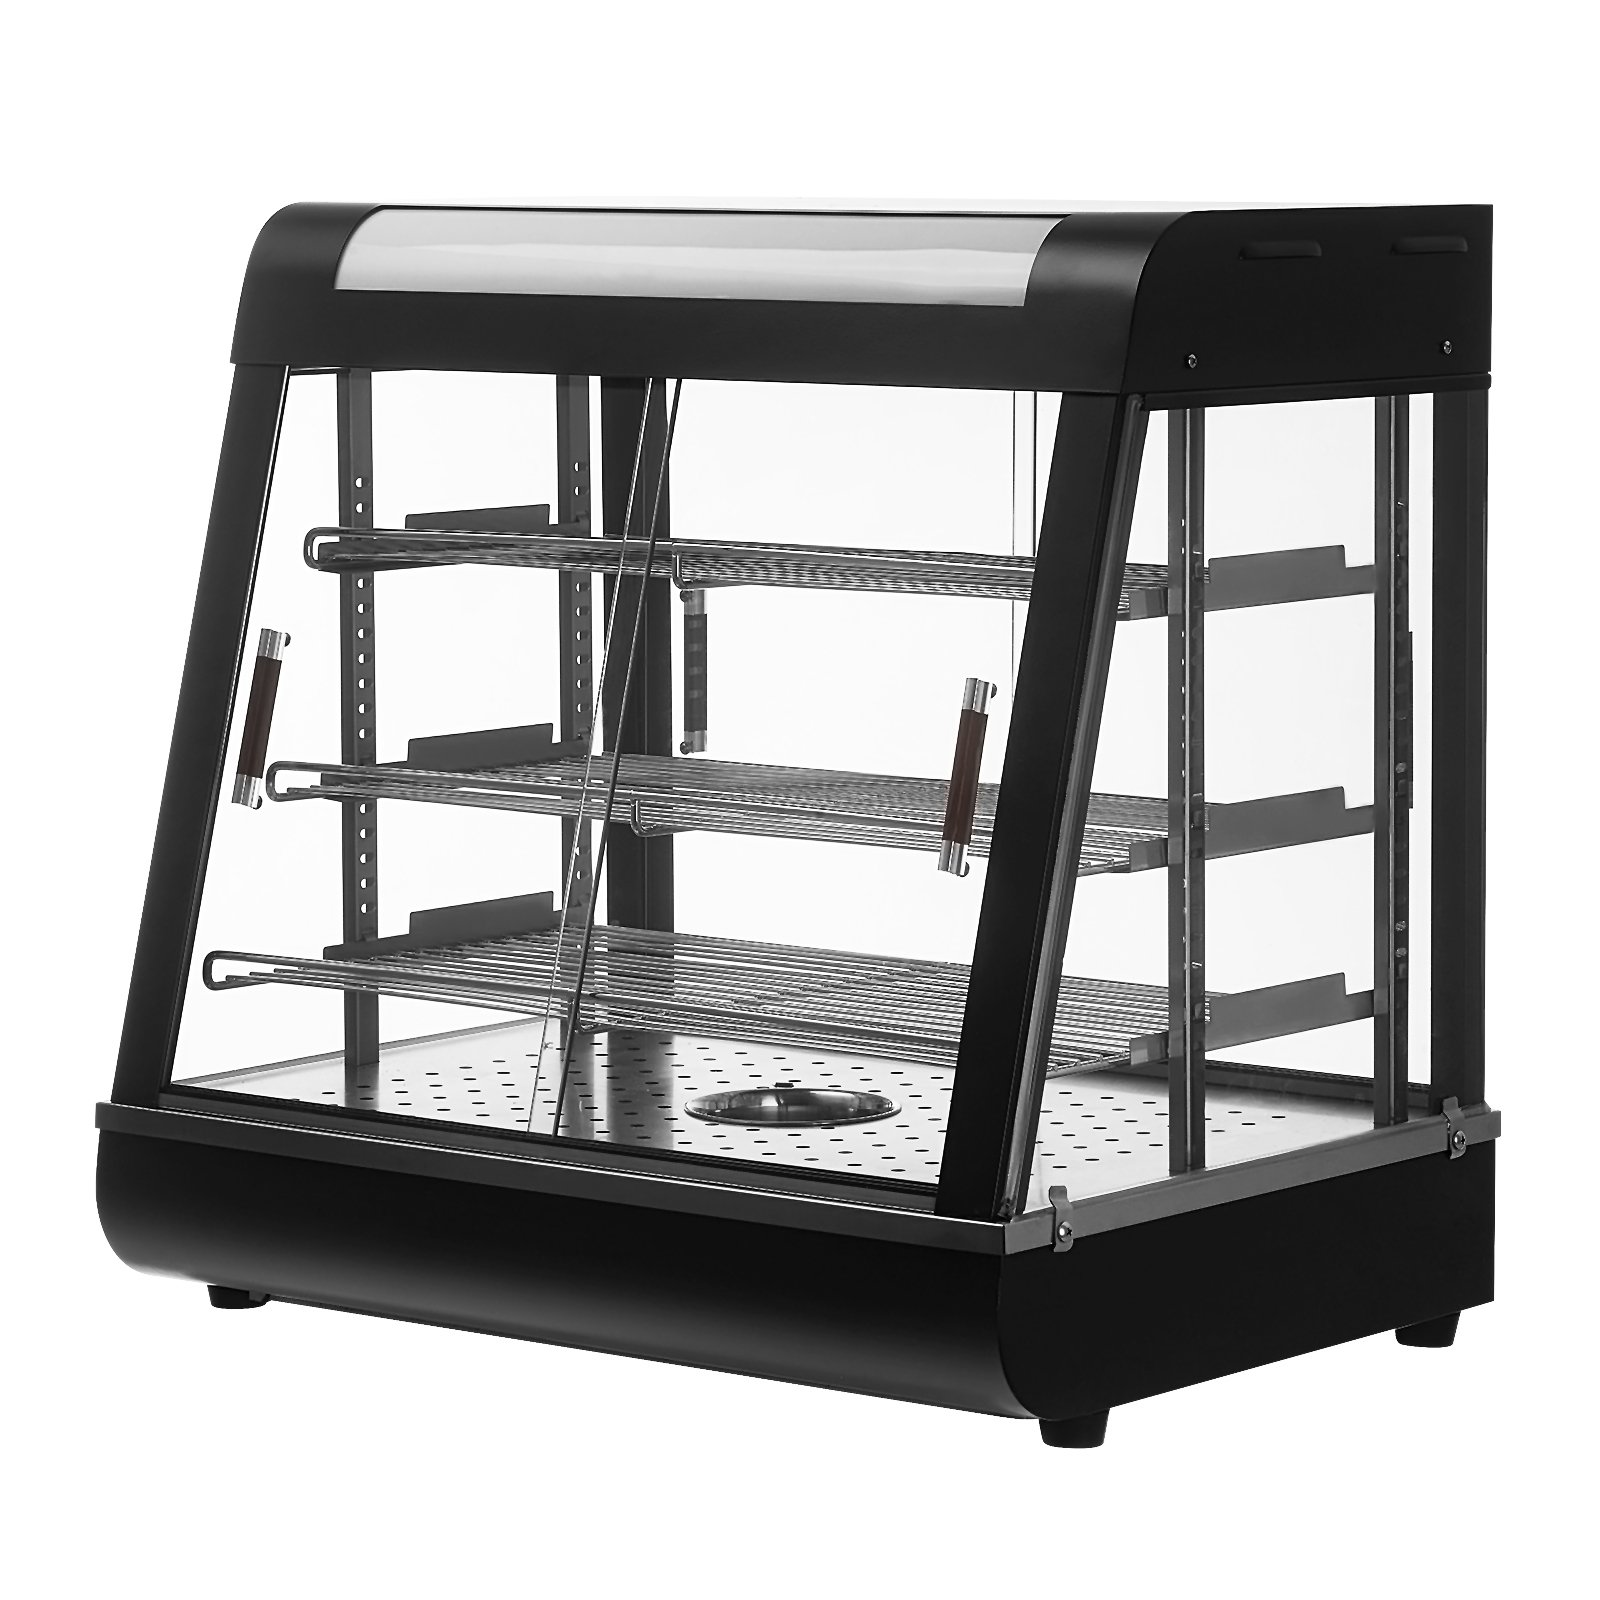 SUNCOO Commercial Countertop Food Warmer Display Case /Restaurant Heated Cabinet 220V for Hot Food,Pizza,Pastry,Patty,Empanda